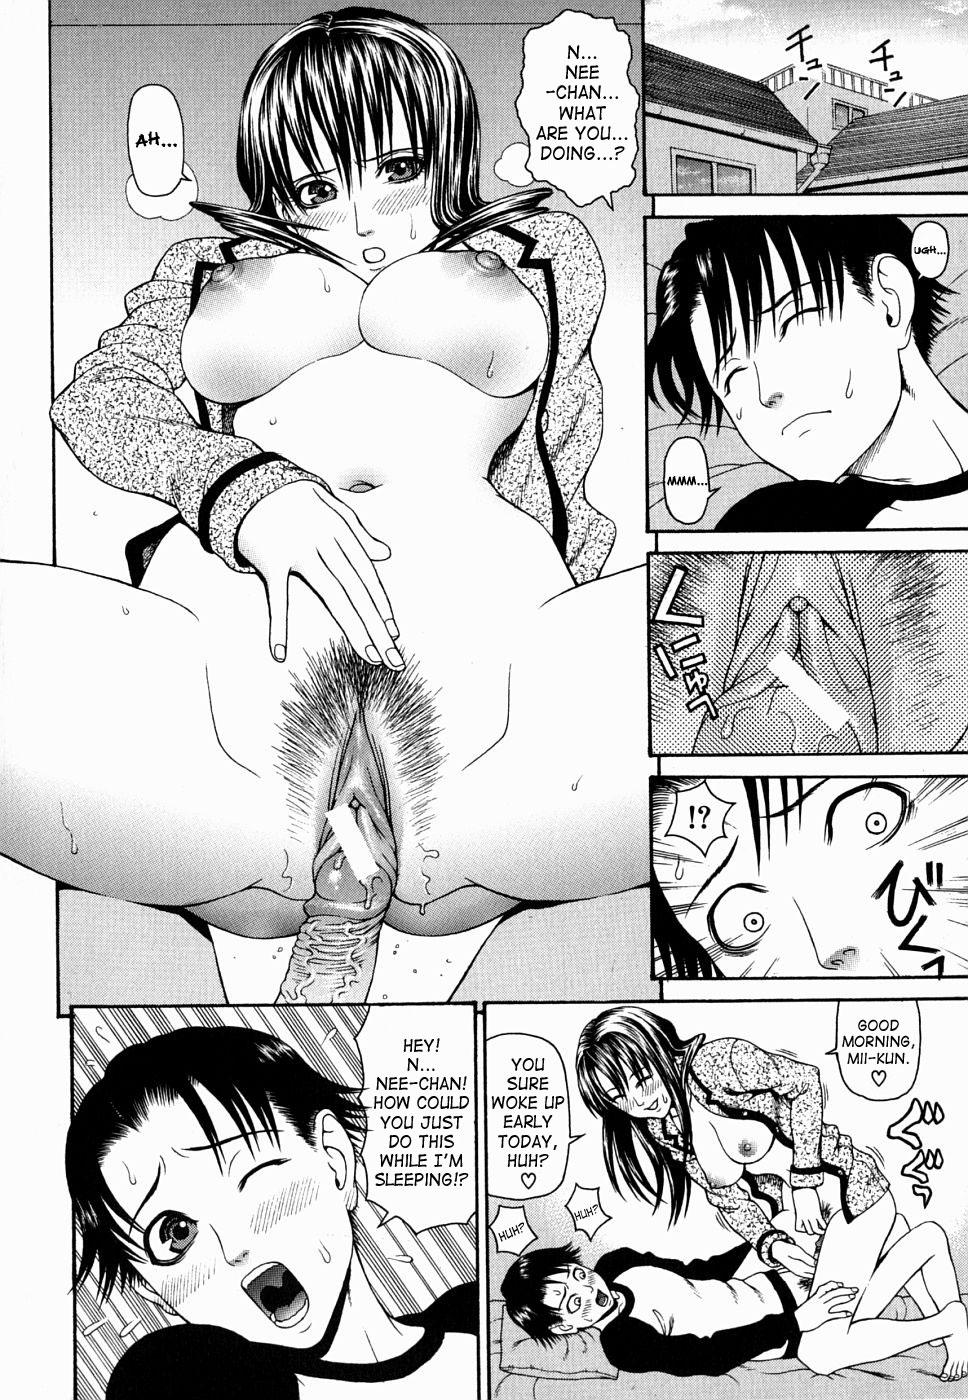 Kan - Commit Adultery 127